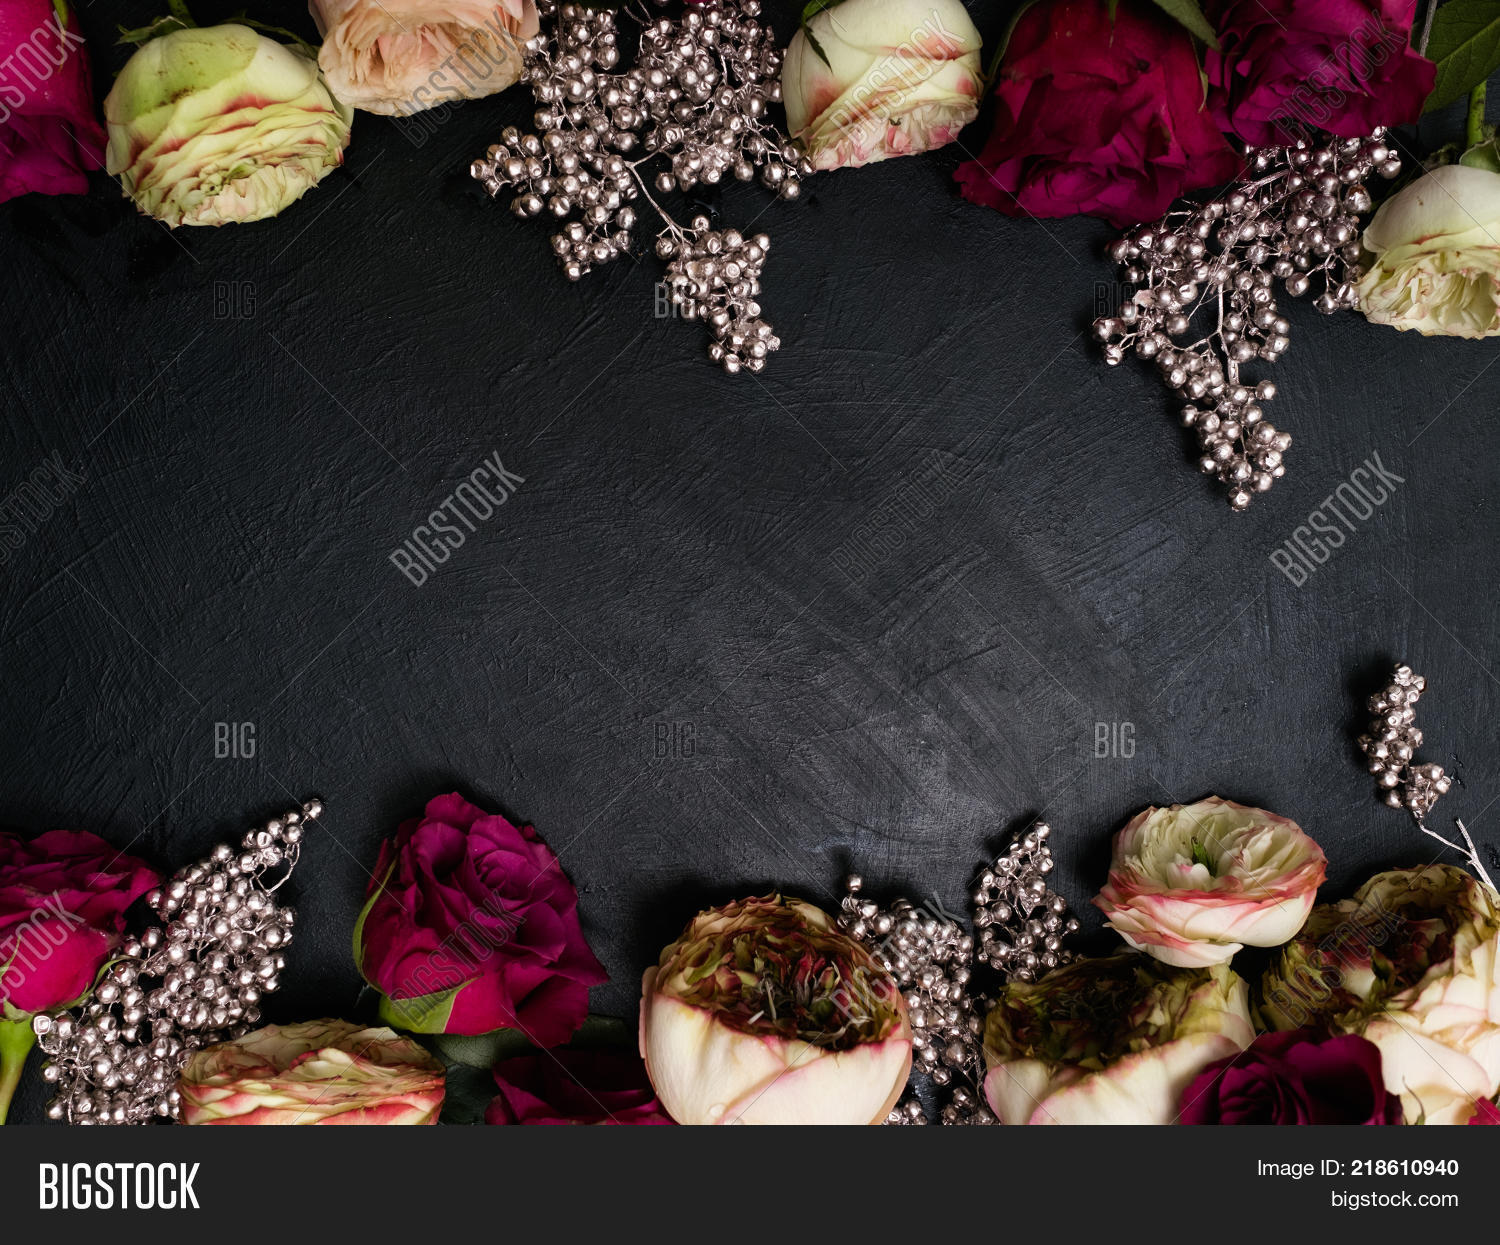 Gothic Wedding Flowers Image Photo Free Trial Bigstock